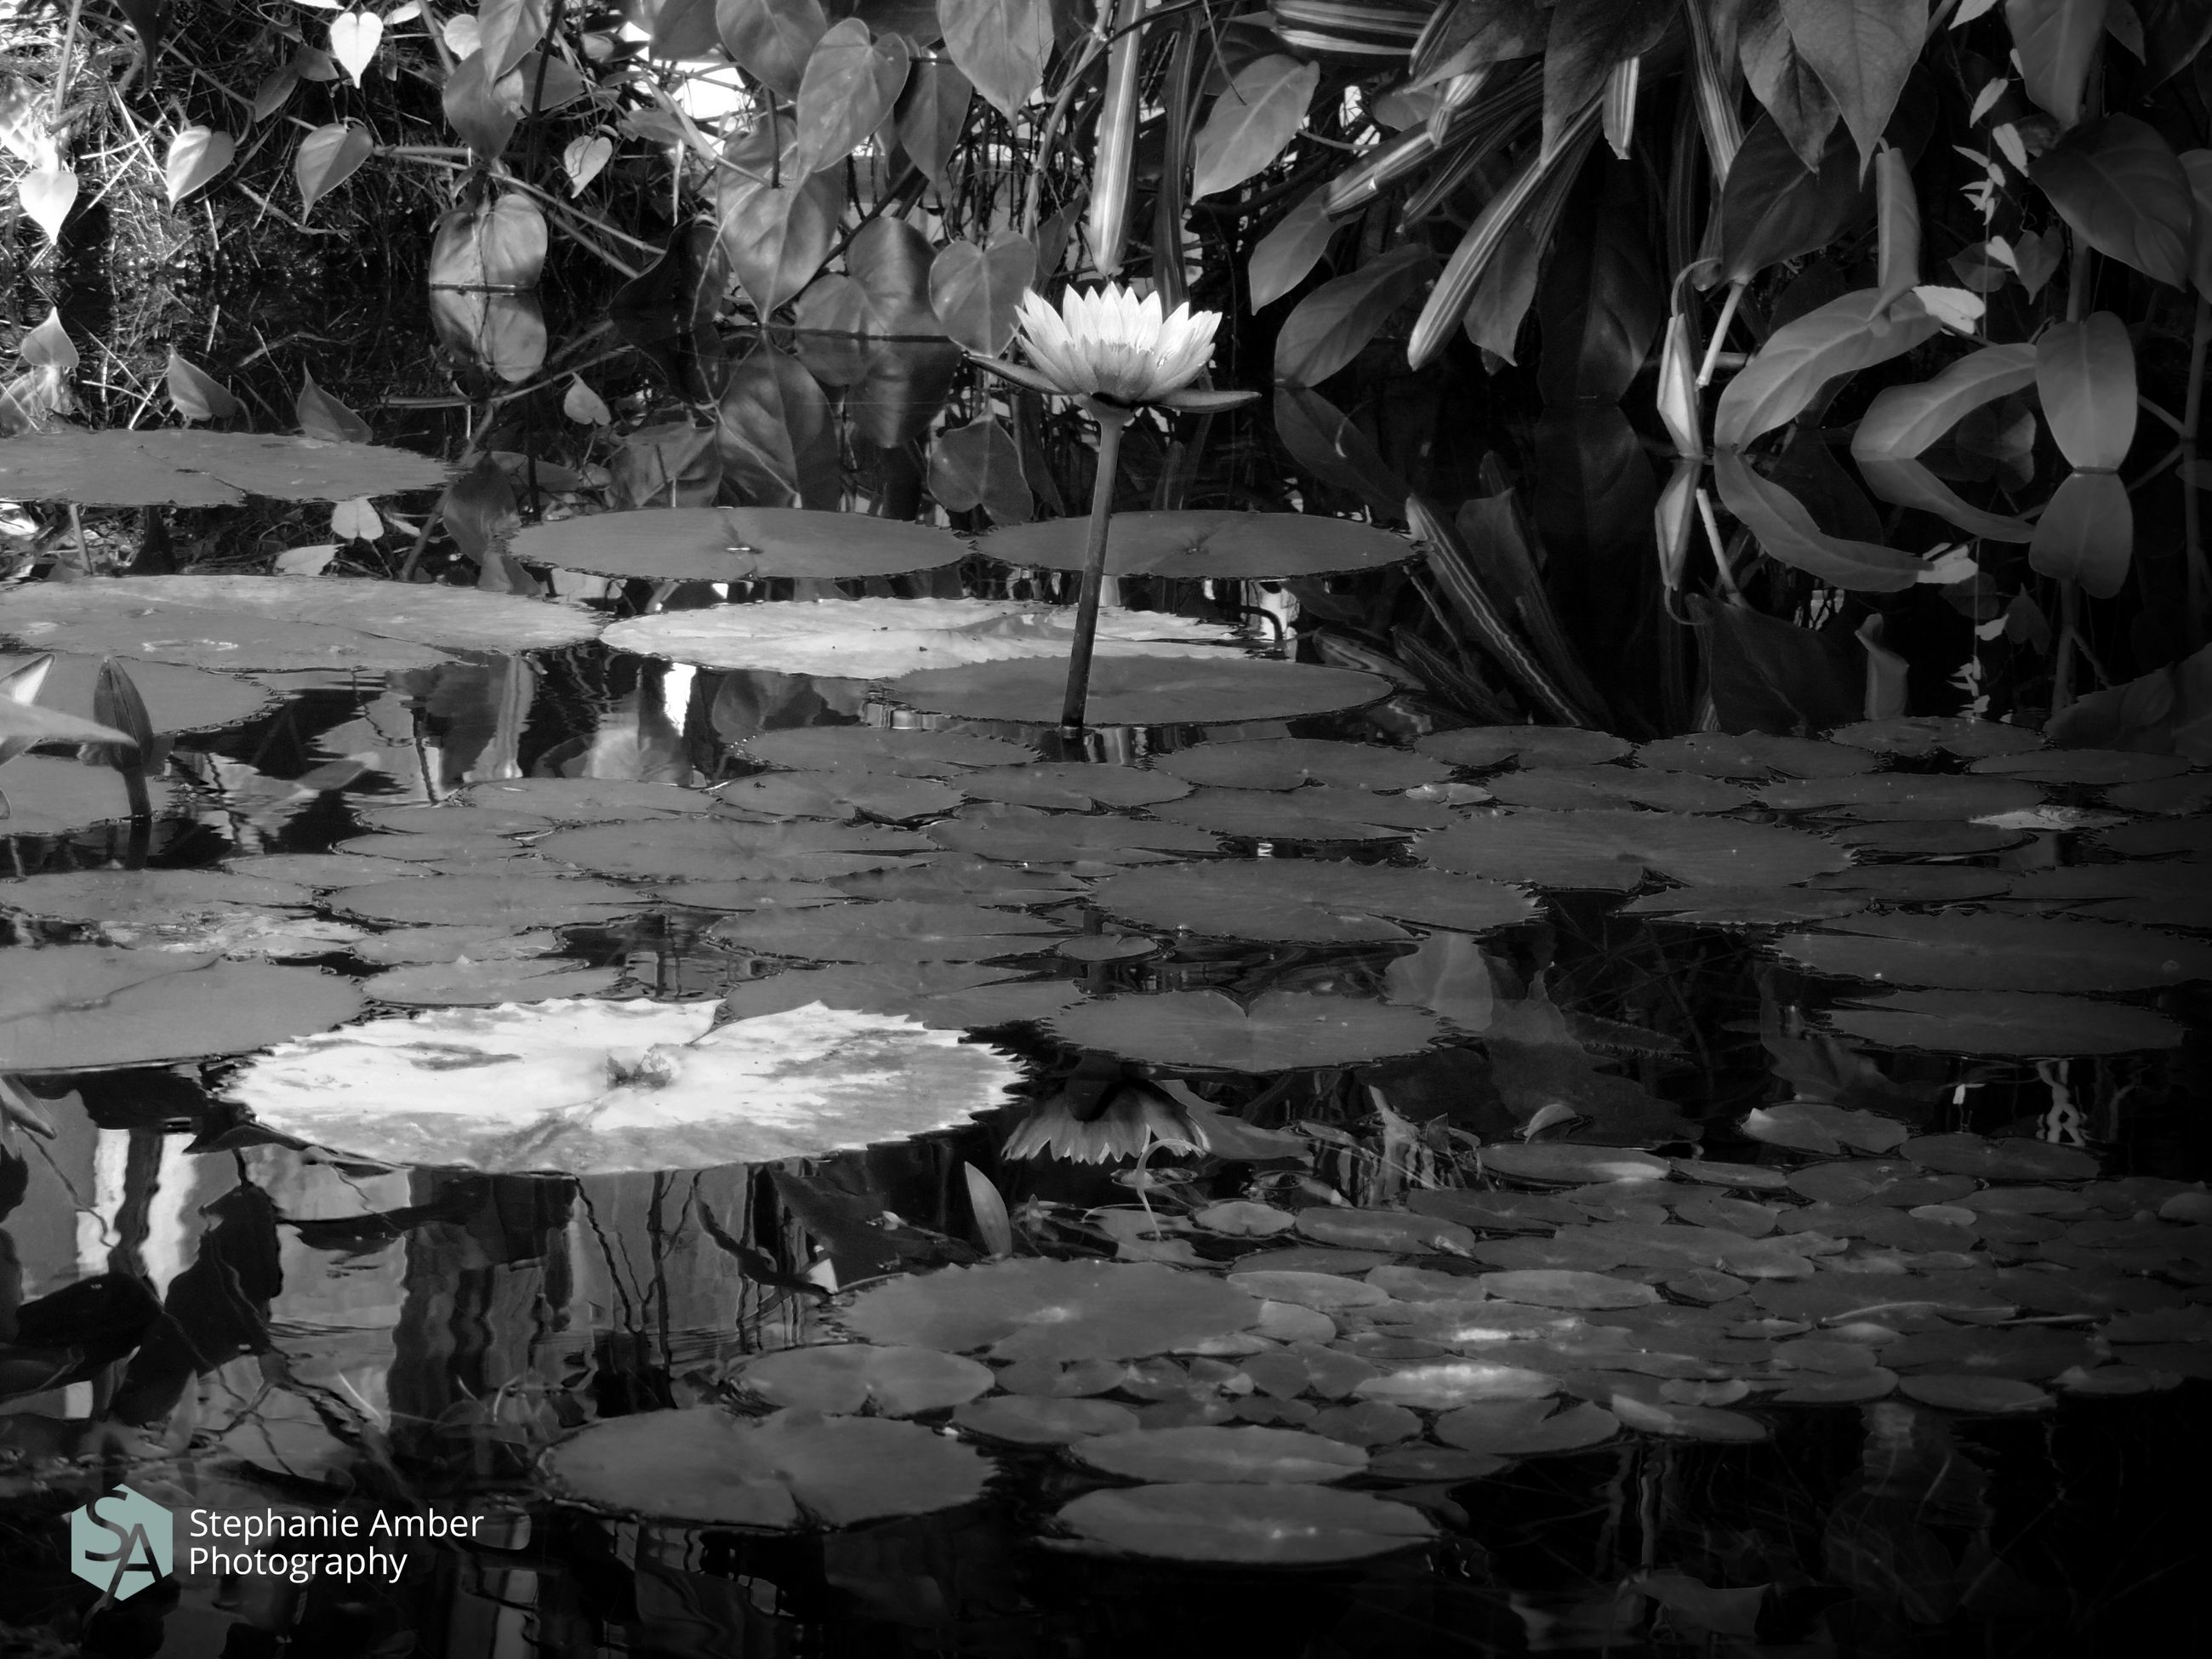 flower, flowering plant, water, plant, vulnerability, beauty in nature, growth, fragility, lake, nature, leaf, water lily, plant part, day, freshness, petal, floating, close-up, floating on water, no people, flower head, outdoors, lotus water lily